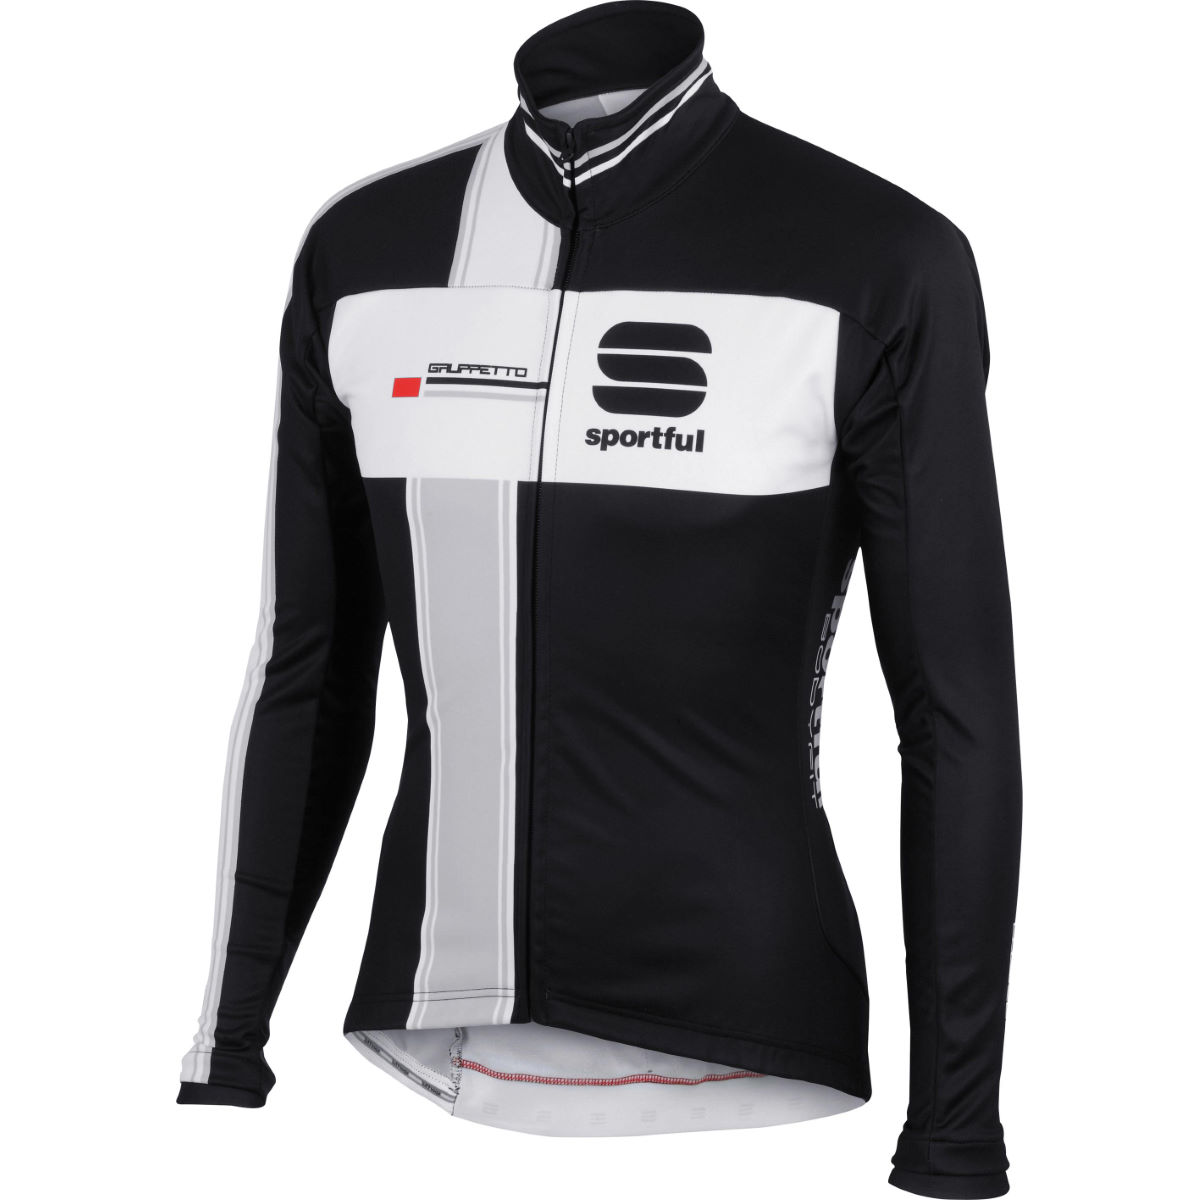 Sportful Gruppetto Long Sleeve Jacket AW13